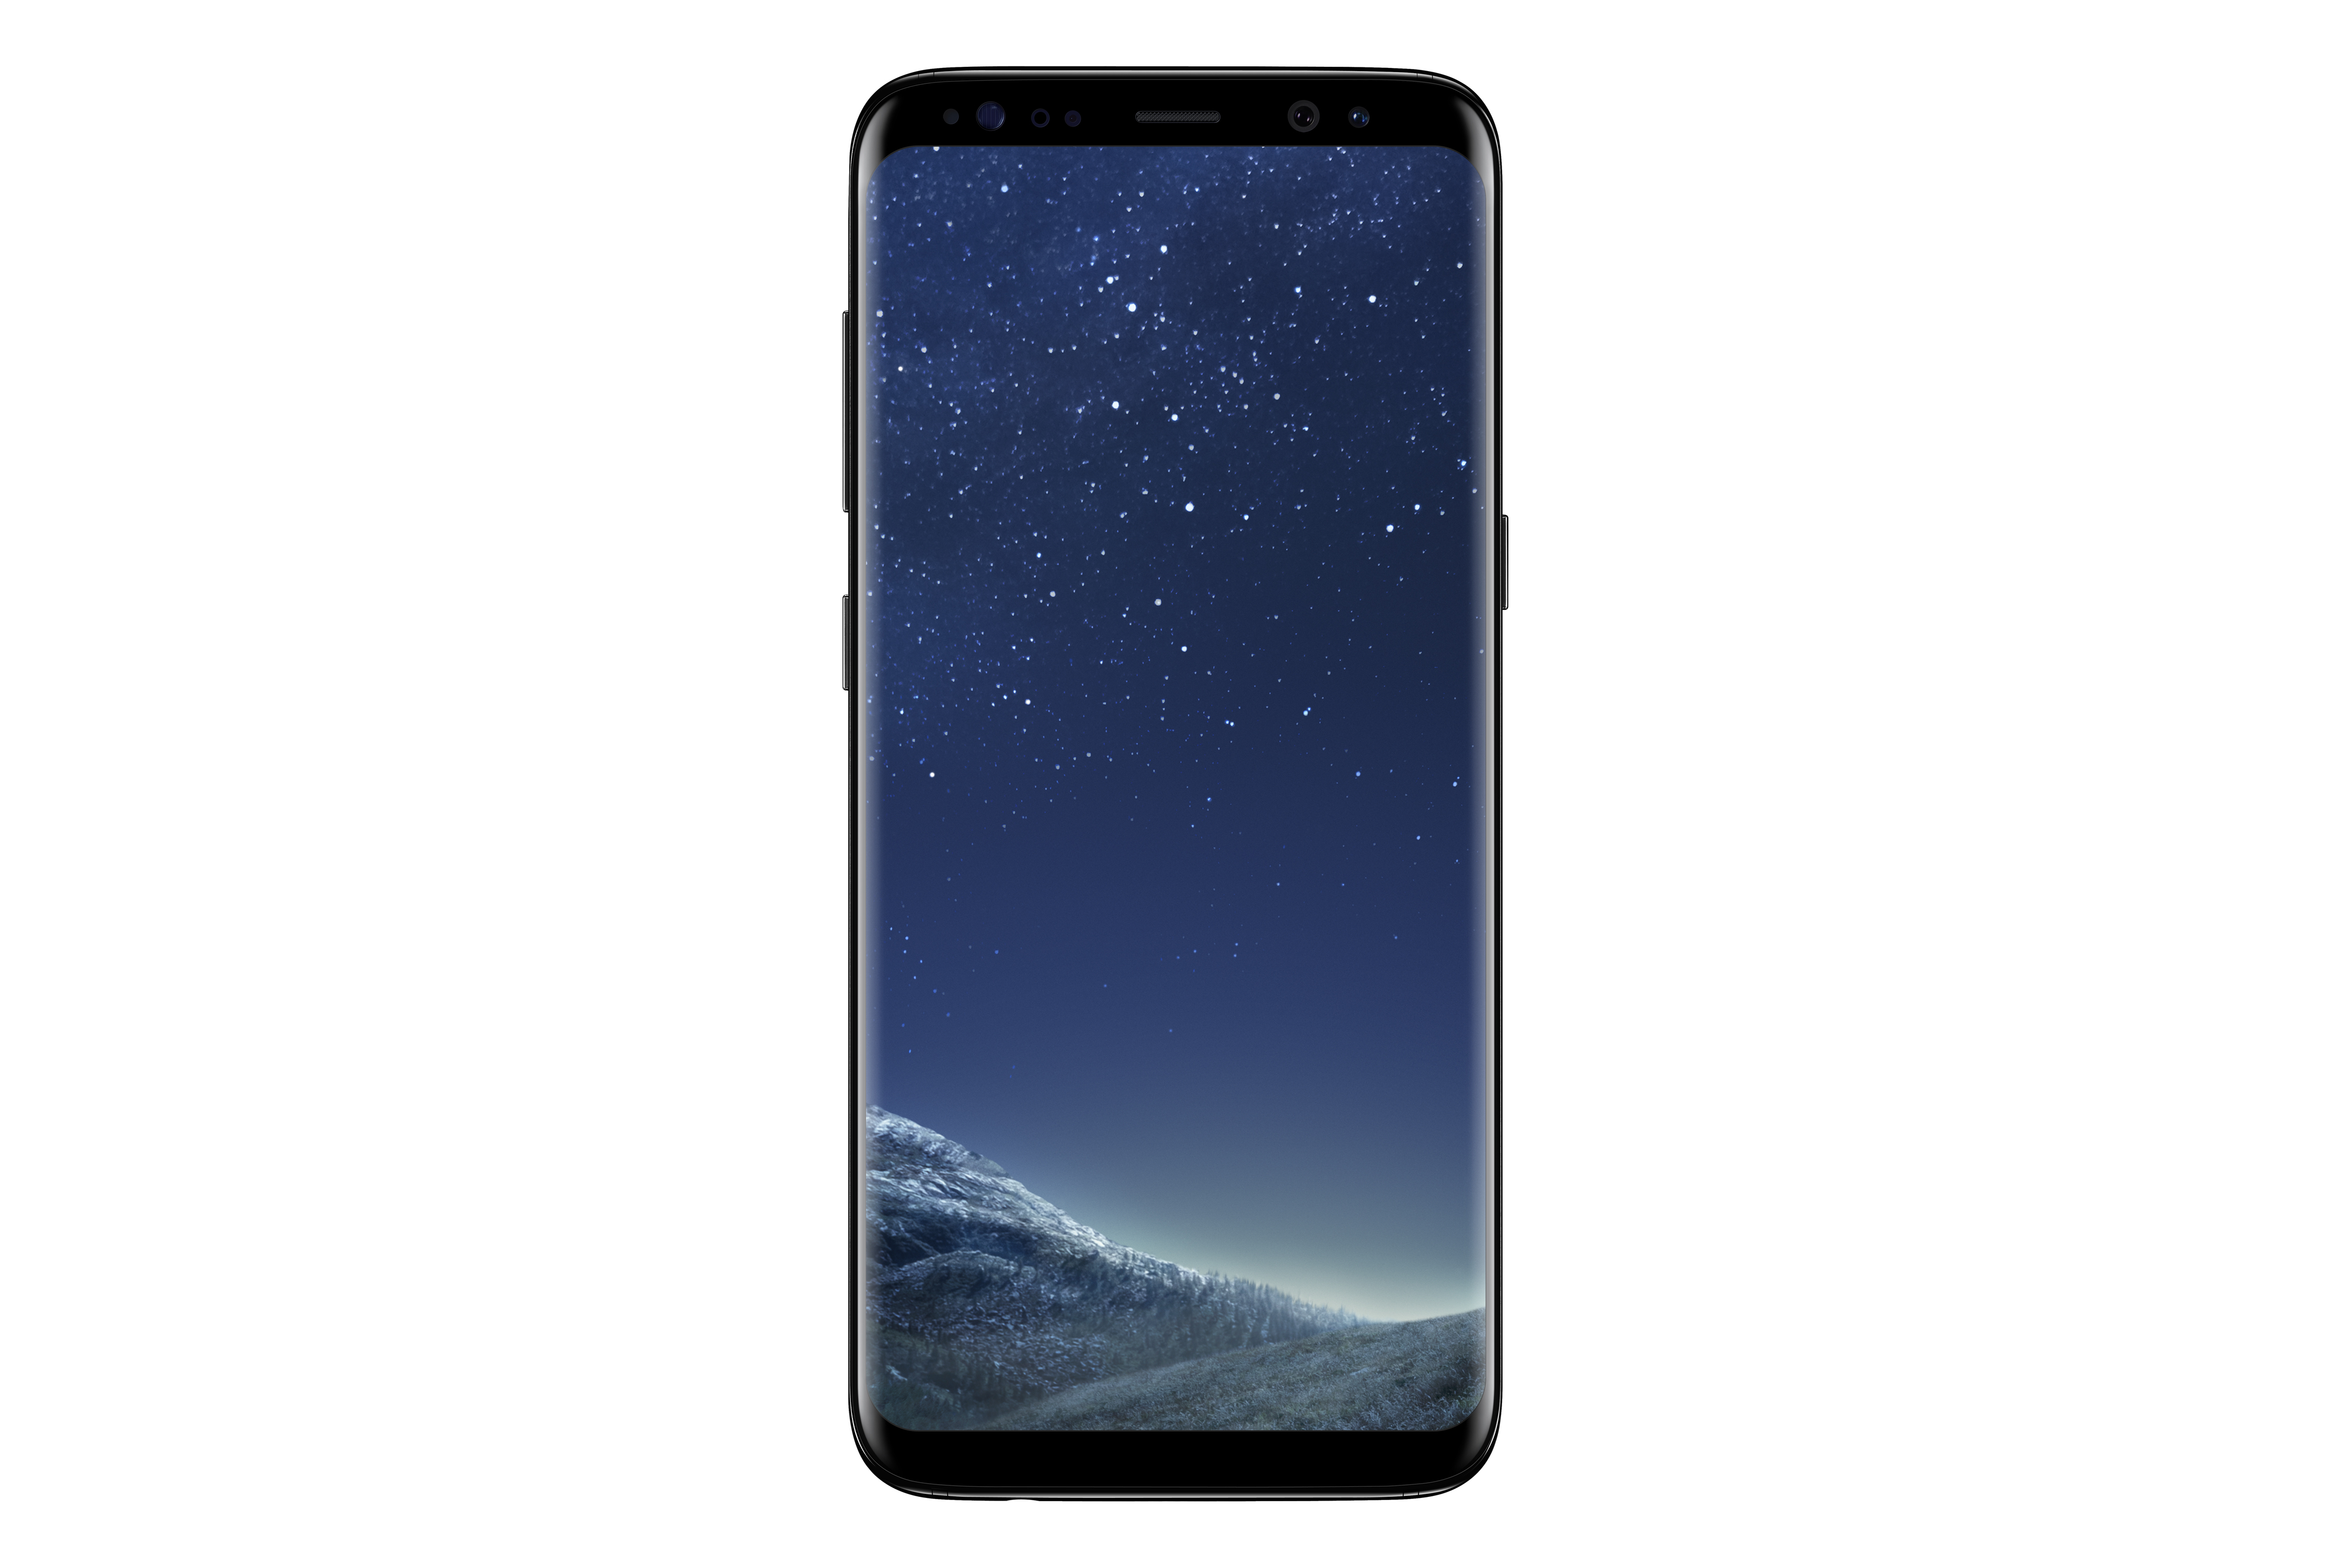 Samsung SM-G950F GALAXY S8 64GB, Midnight Black, SM-G950FZKABGL